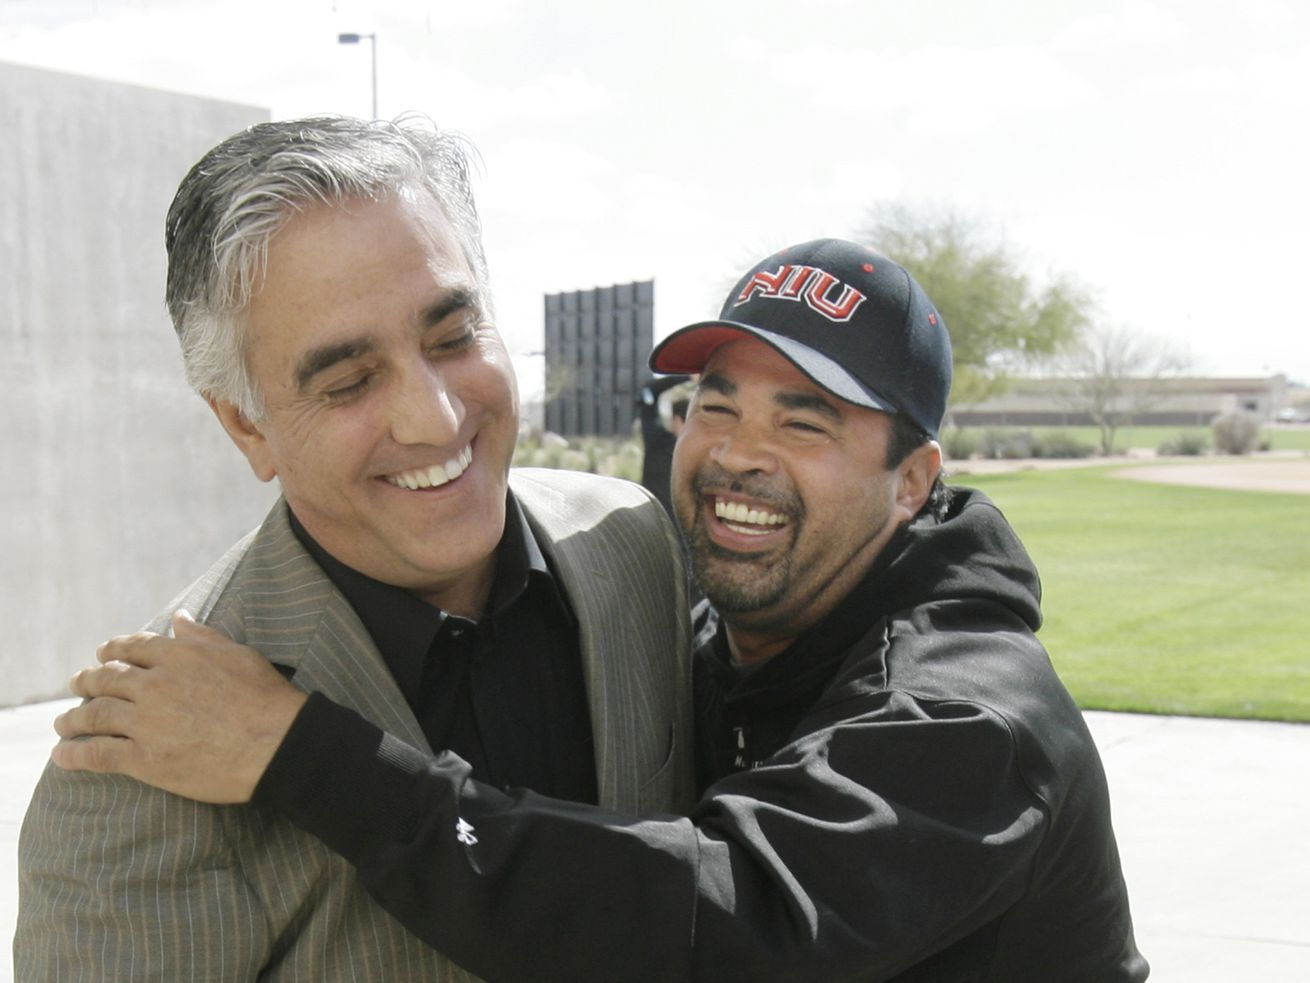 ESPN baseball reporter Pedro Gomez, shown in a 2008 photo with former White Sox manage Ozzie Guillen, died Sunday at age 58.